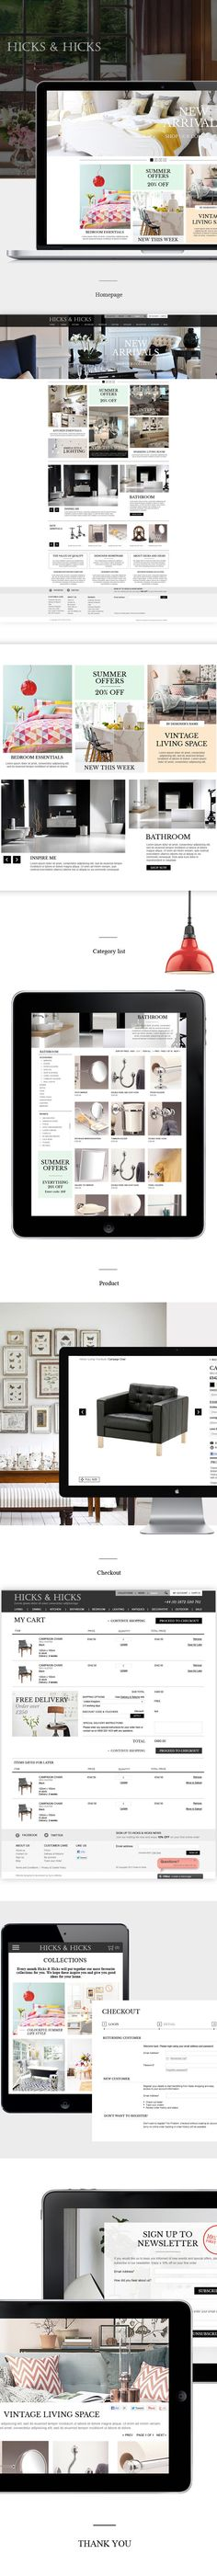 Hicks and Hicks by Ge Song, via Behance --- I'm beginning to worry that my #design taste is getting too narrow... modern minimalist clean... but what if someone wants a different style? #designthinking